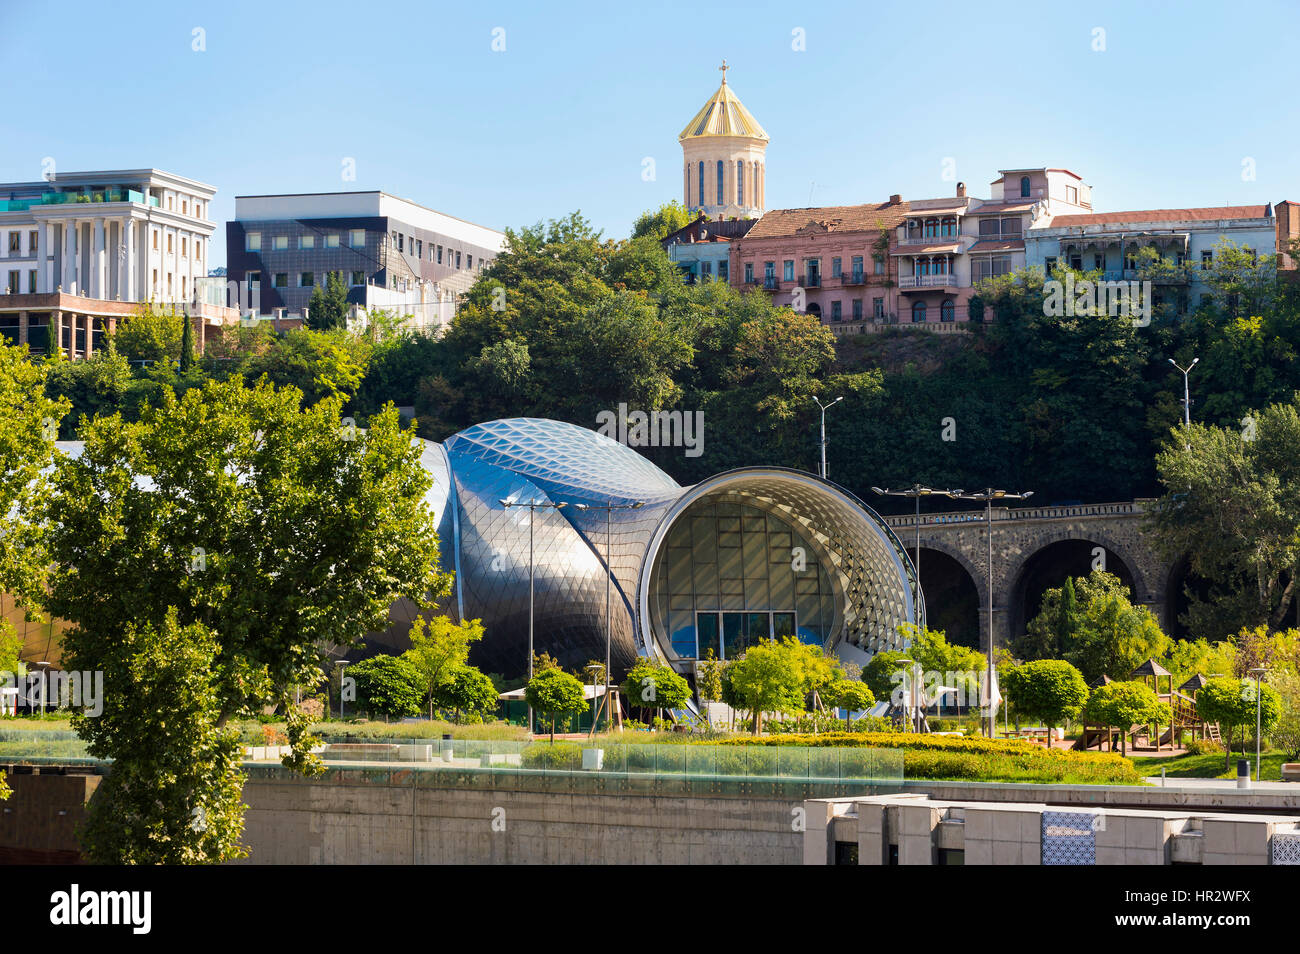 Concert Hall and Exhibition Centre, Presidential Palace, Rike Park, Tbilisi, Georgia, Caucasus, Middle East, Asia - Stock Image